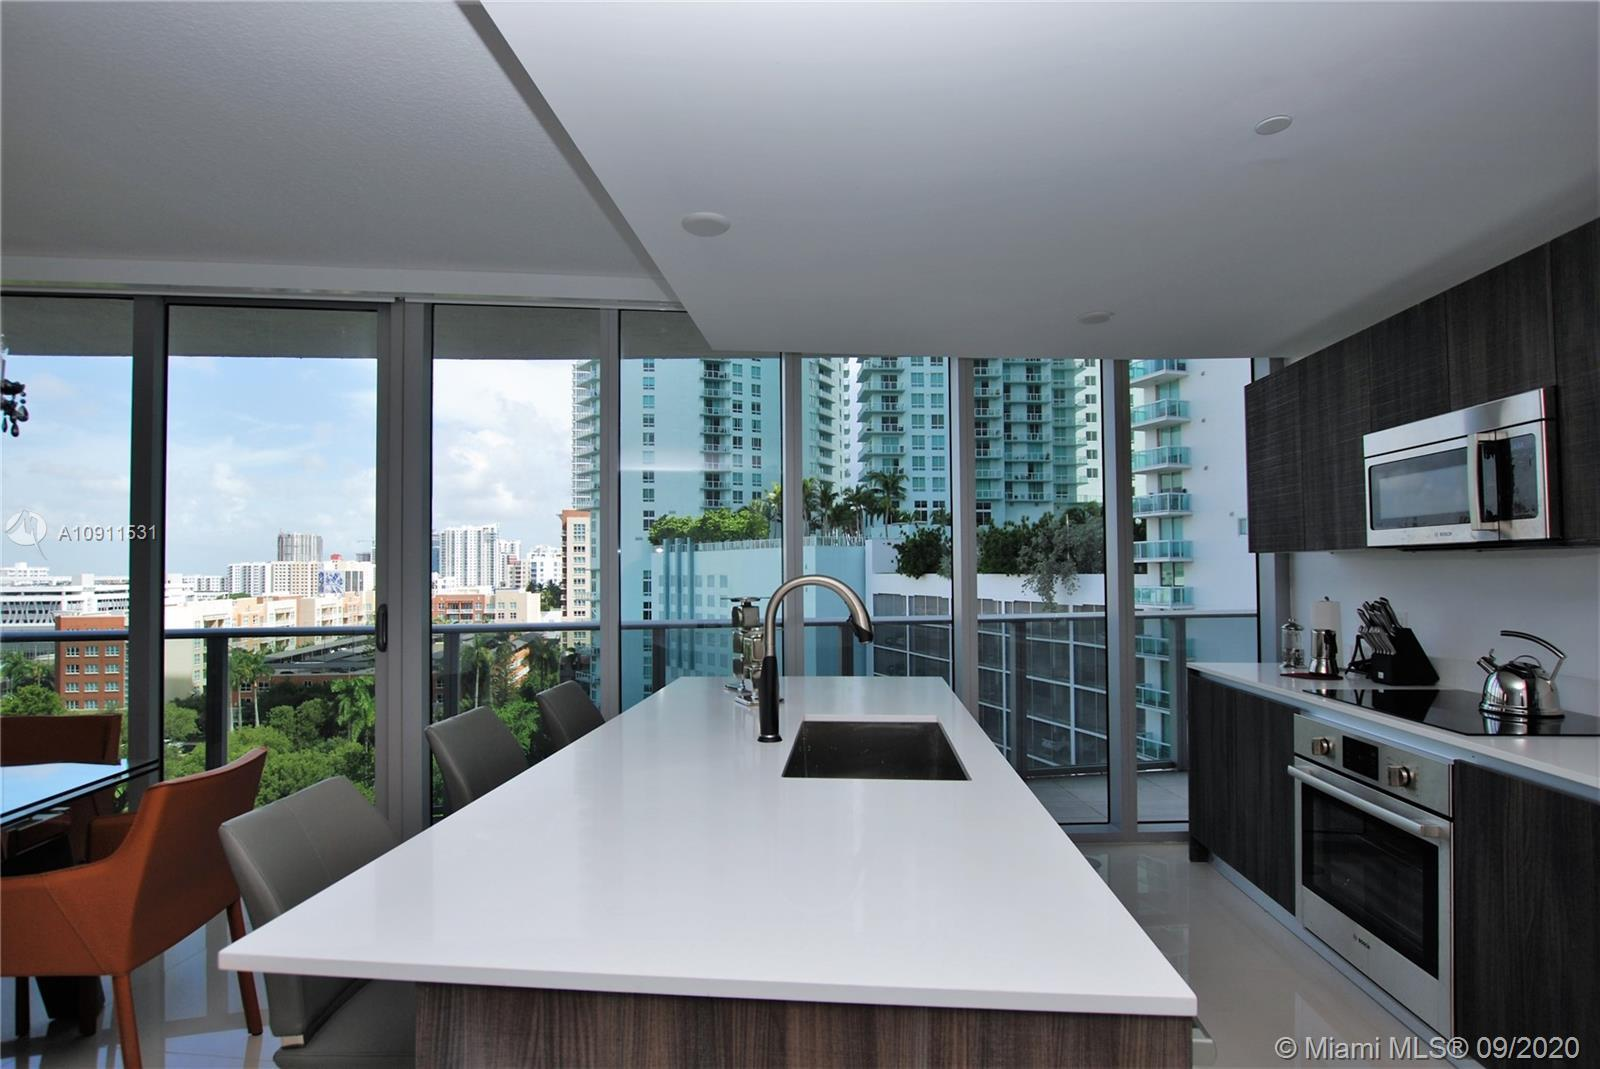 Turnkey unit! Amazing fully furnished 2 bedrooms and 2.5 half baths at Aria on the Bay in Miami. Gre